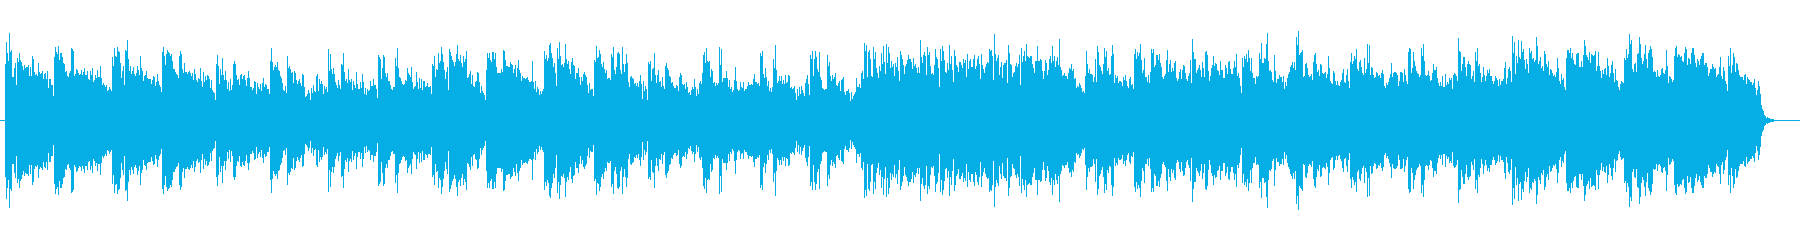 Cheerful relaxation music's reproduced waveform